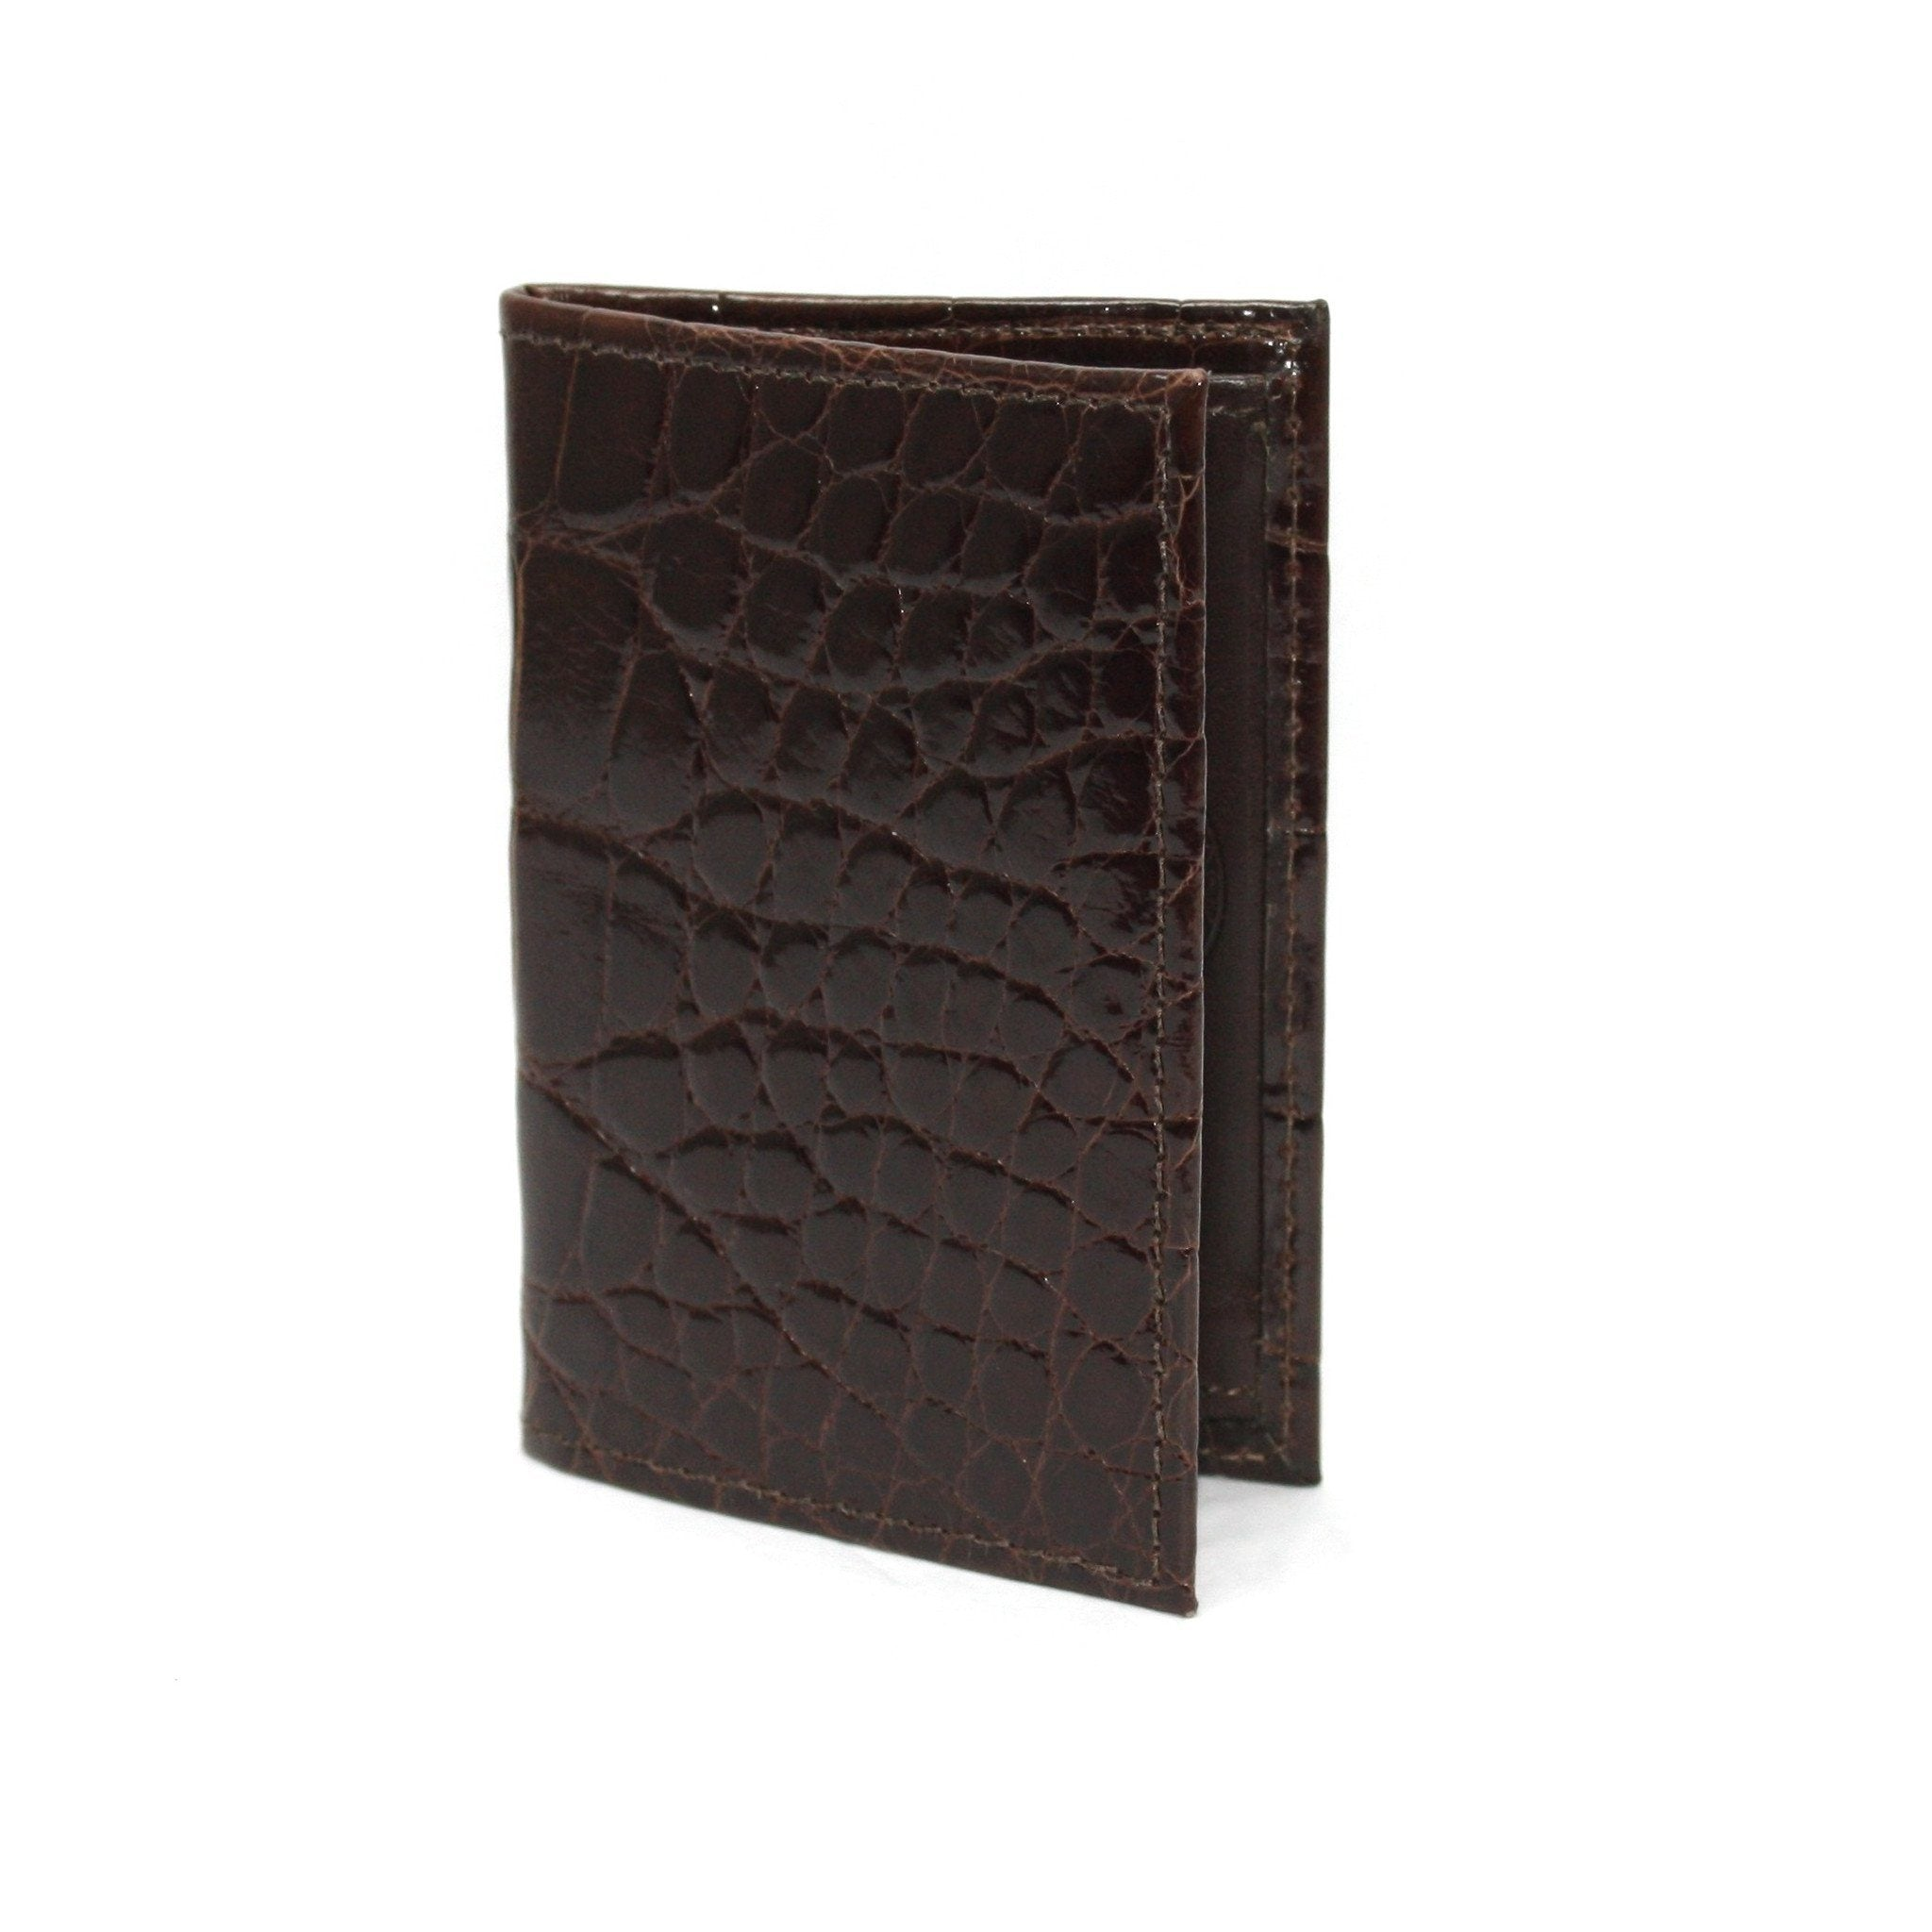 Genuine Alligator Gusseted Cardcase - Brown,WALLETS,GentRow.com, | GentRow.com